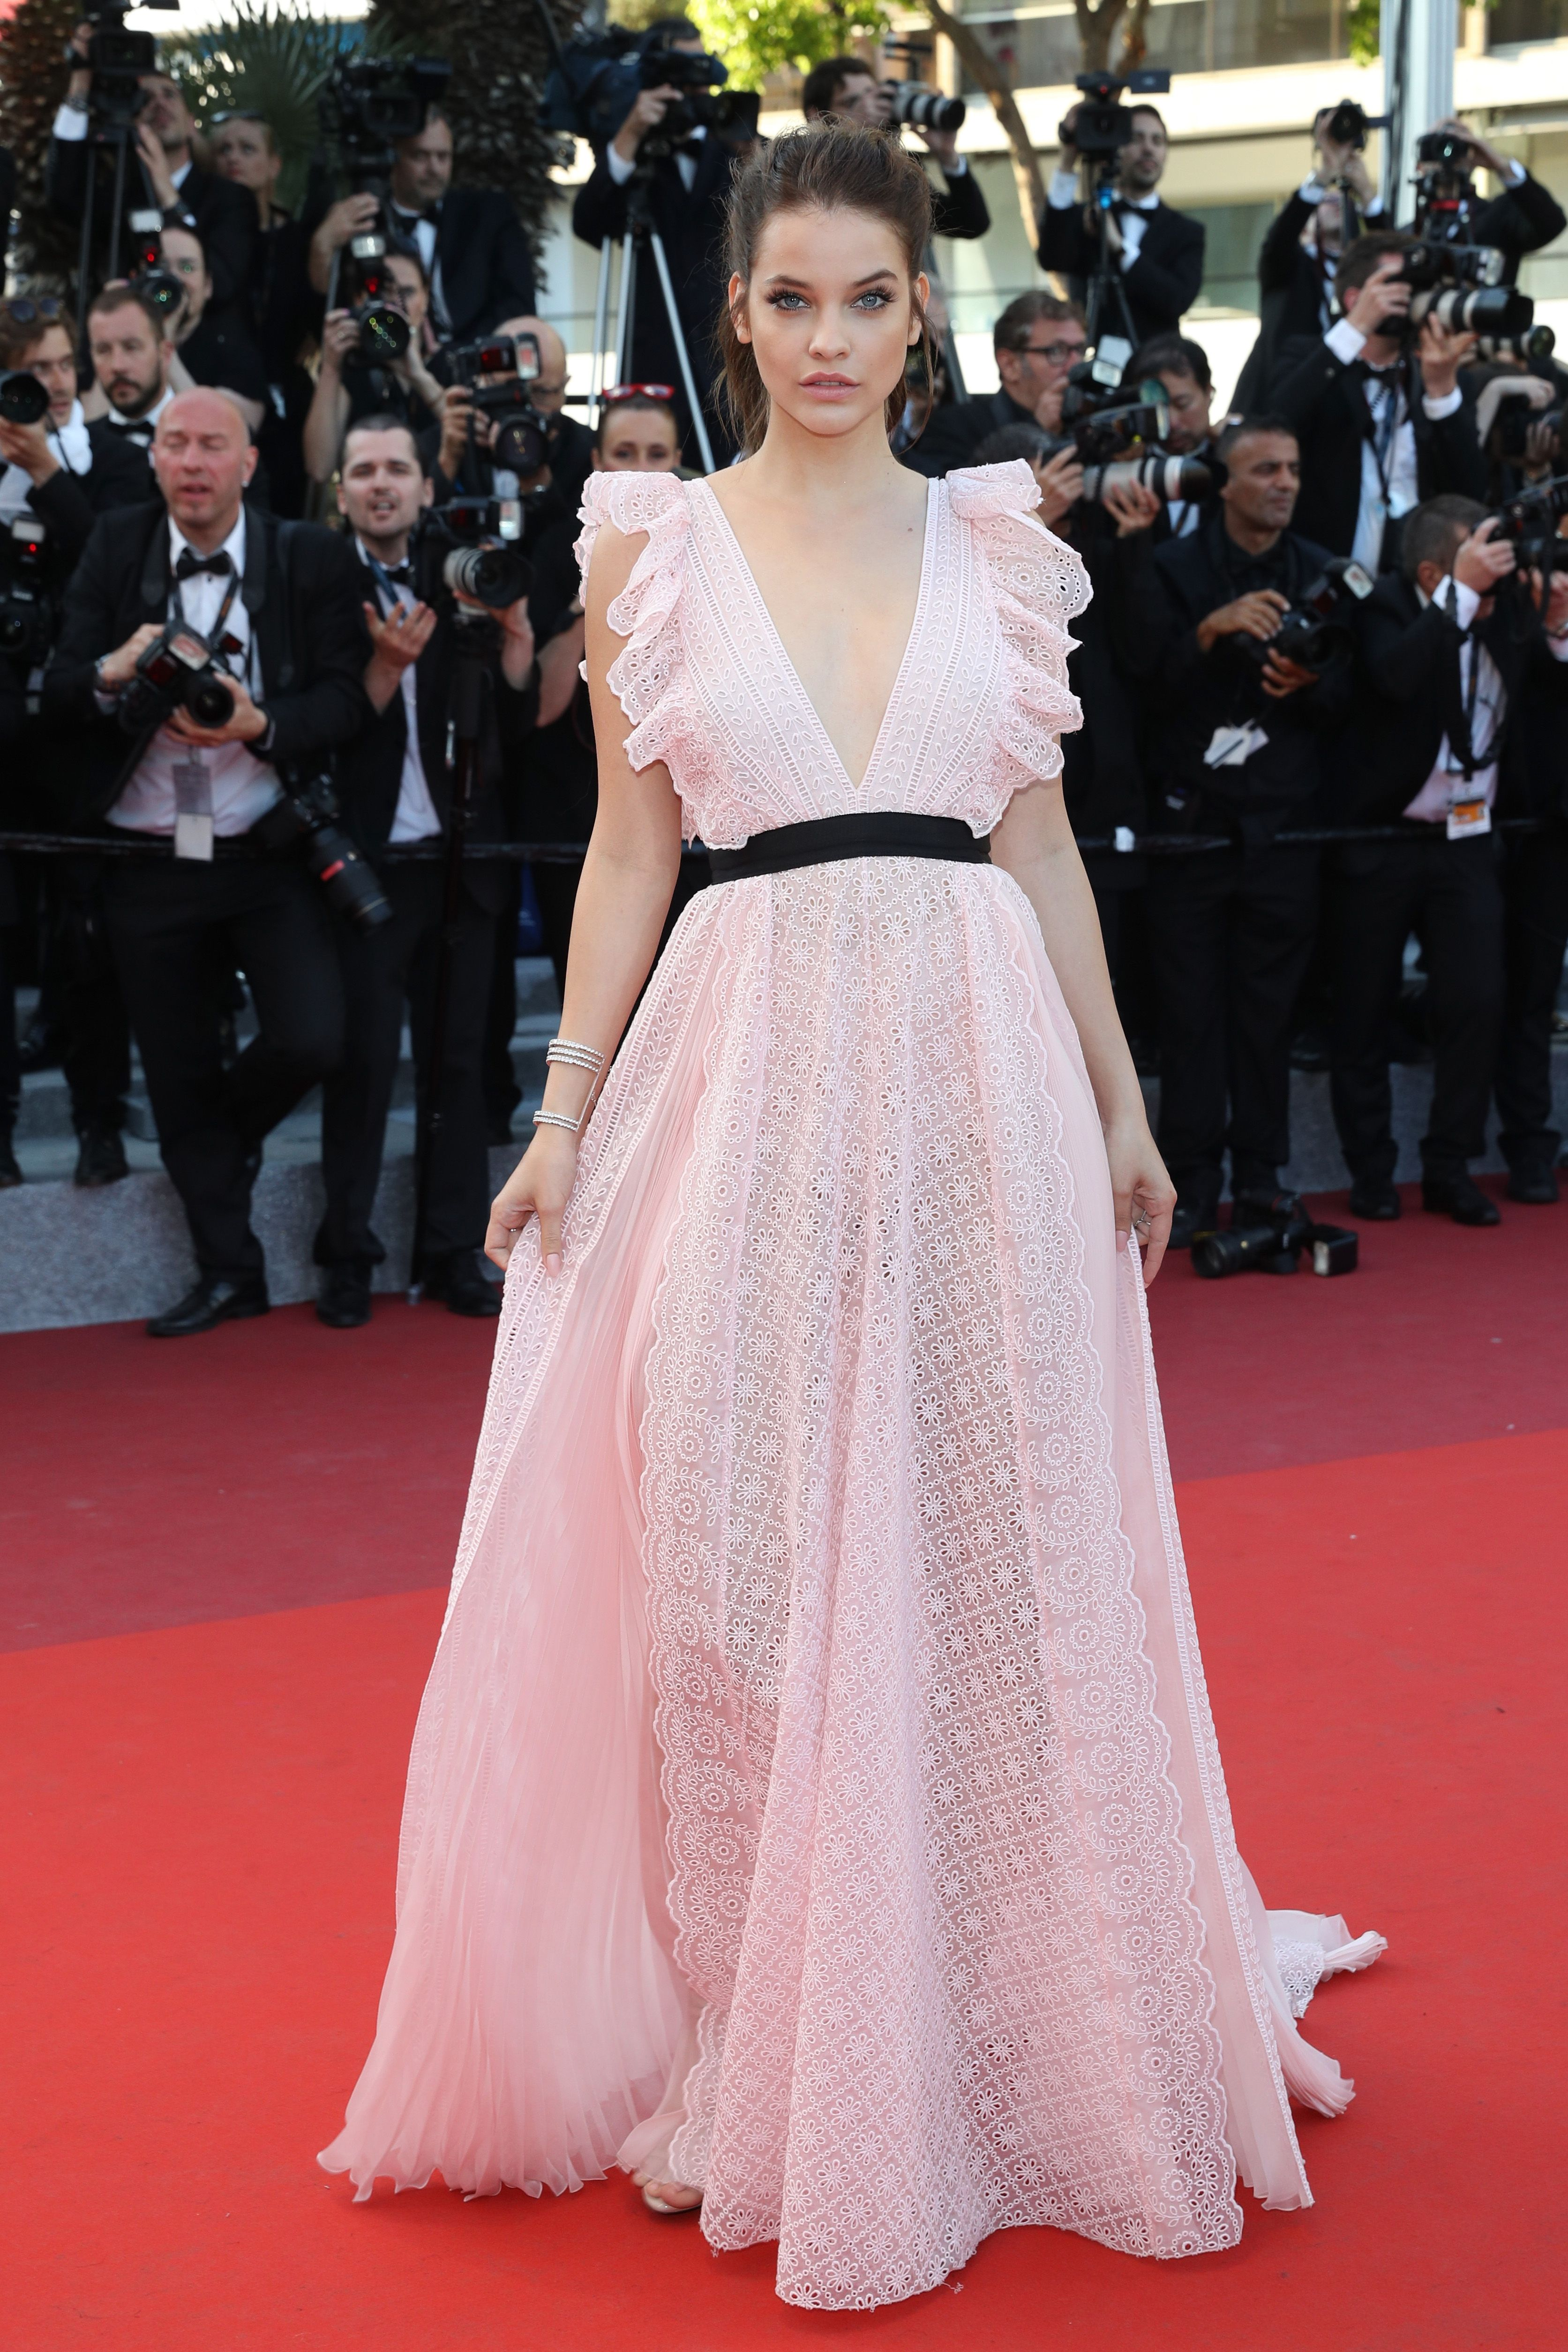 The Best Red Carpet Looks From Cannes Red Carpet Dresses Fashion Red Carpet Gowns